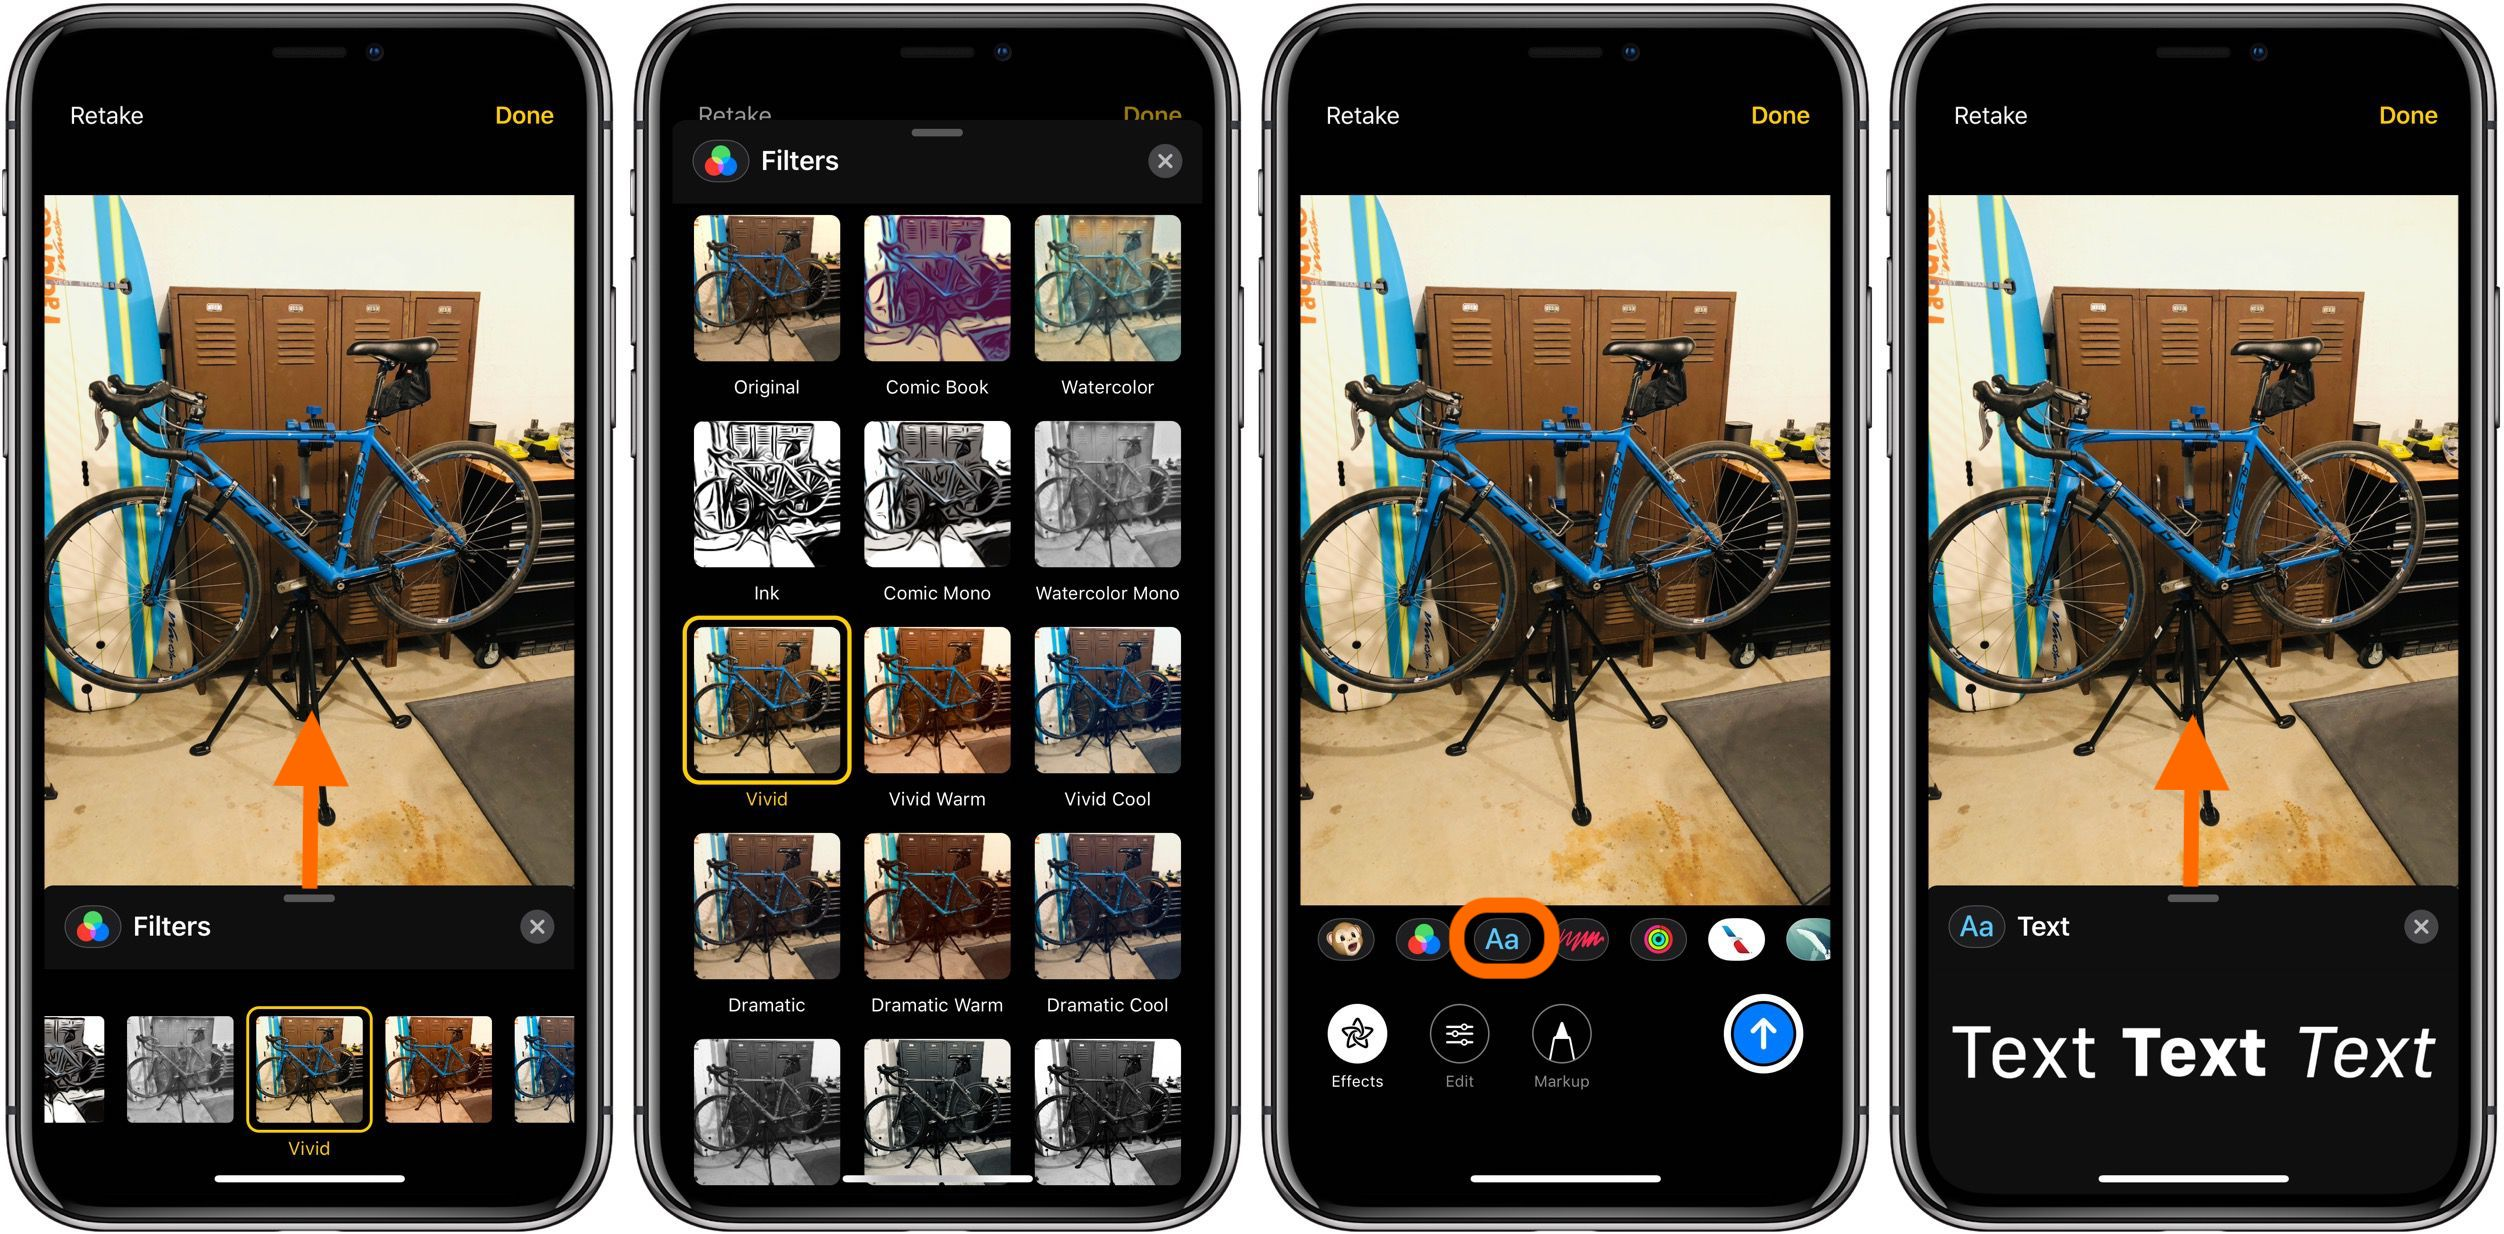 iOS 12: How to markup, add effects, and edit photos and videos